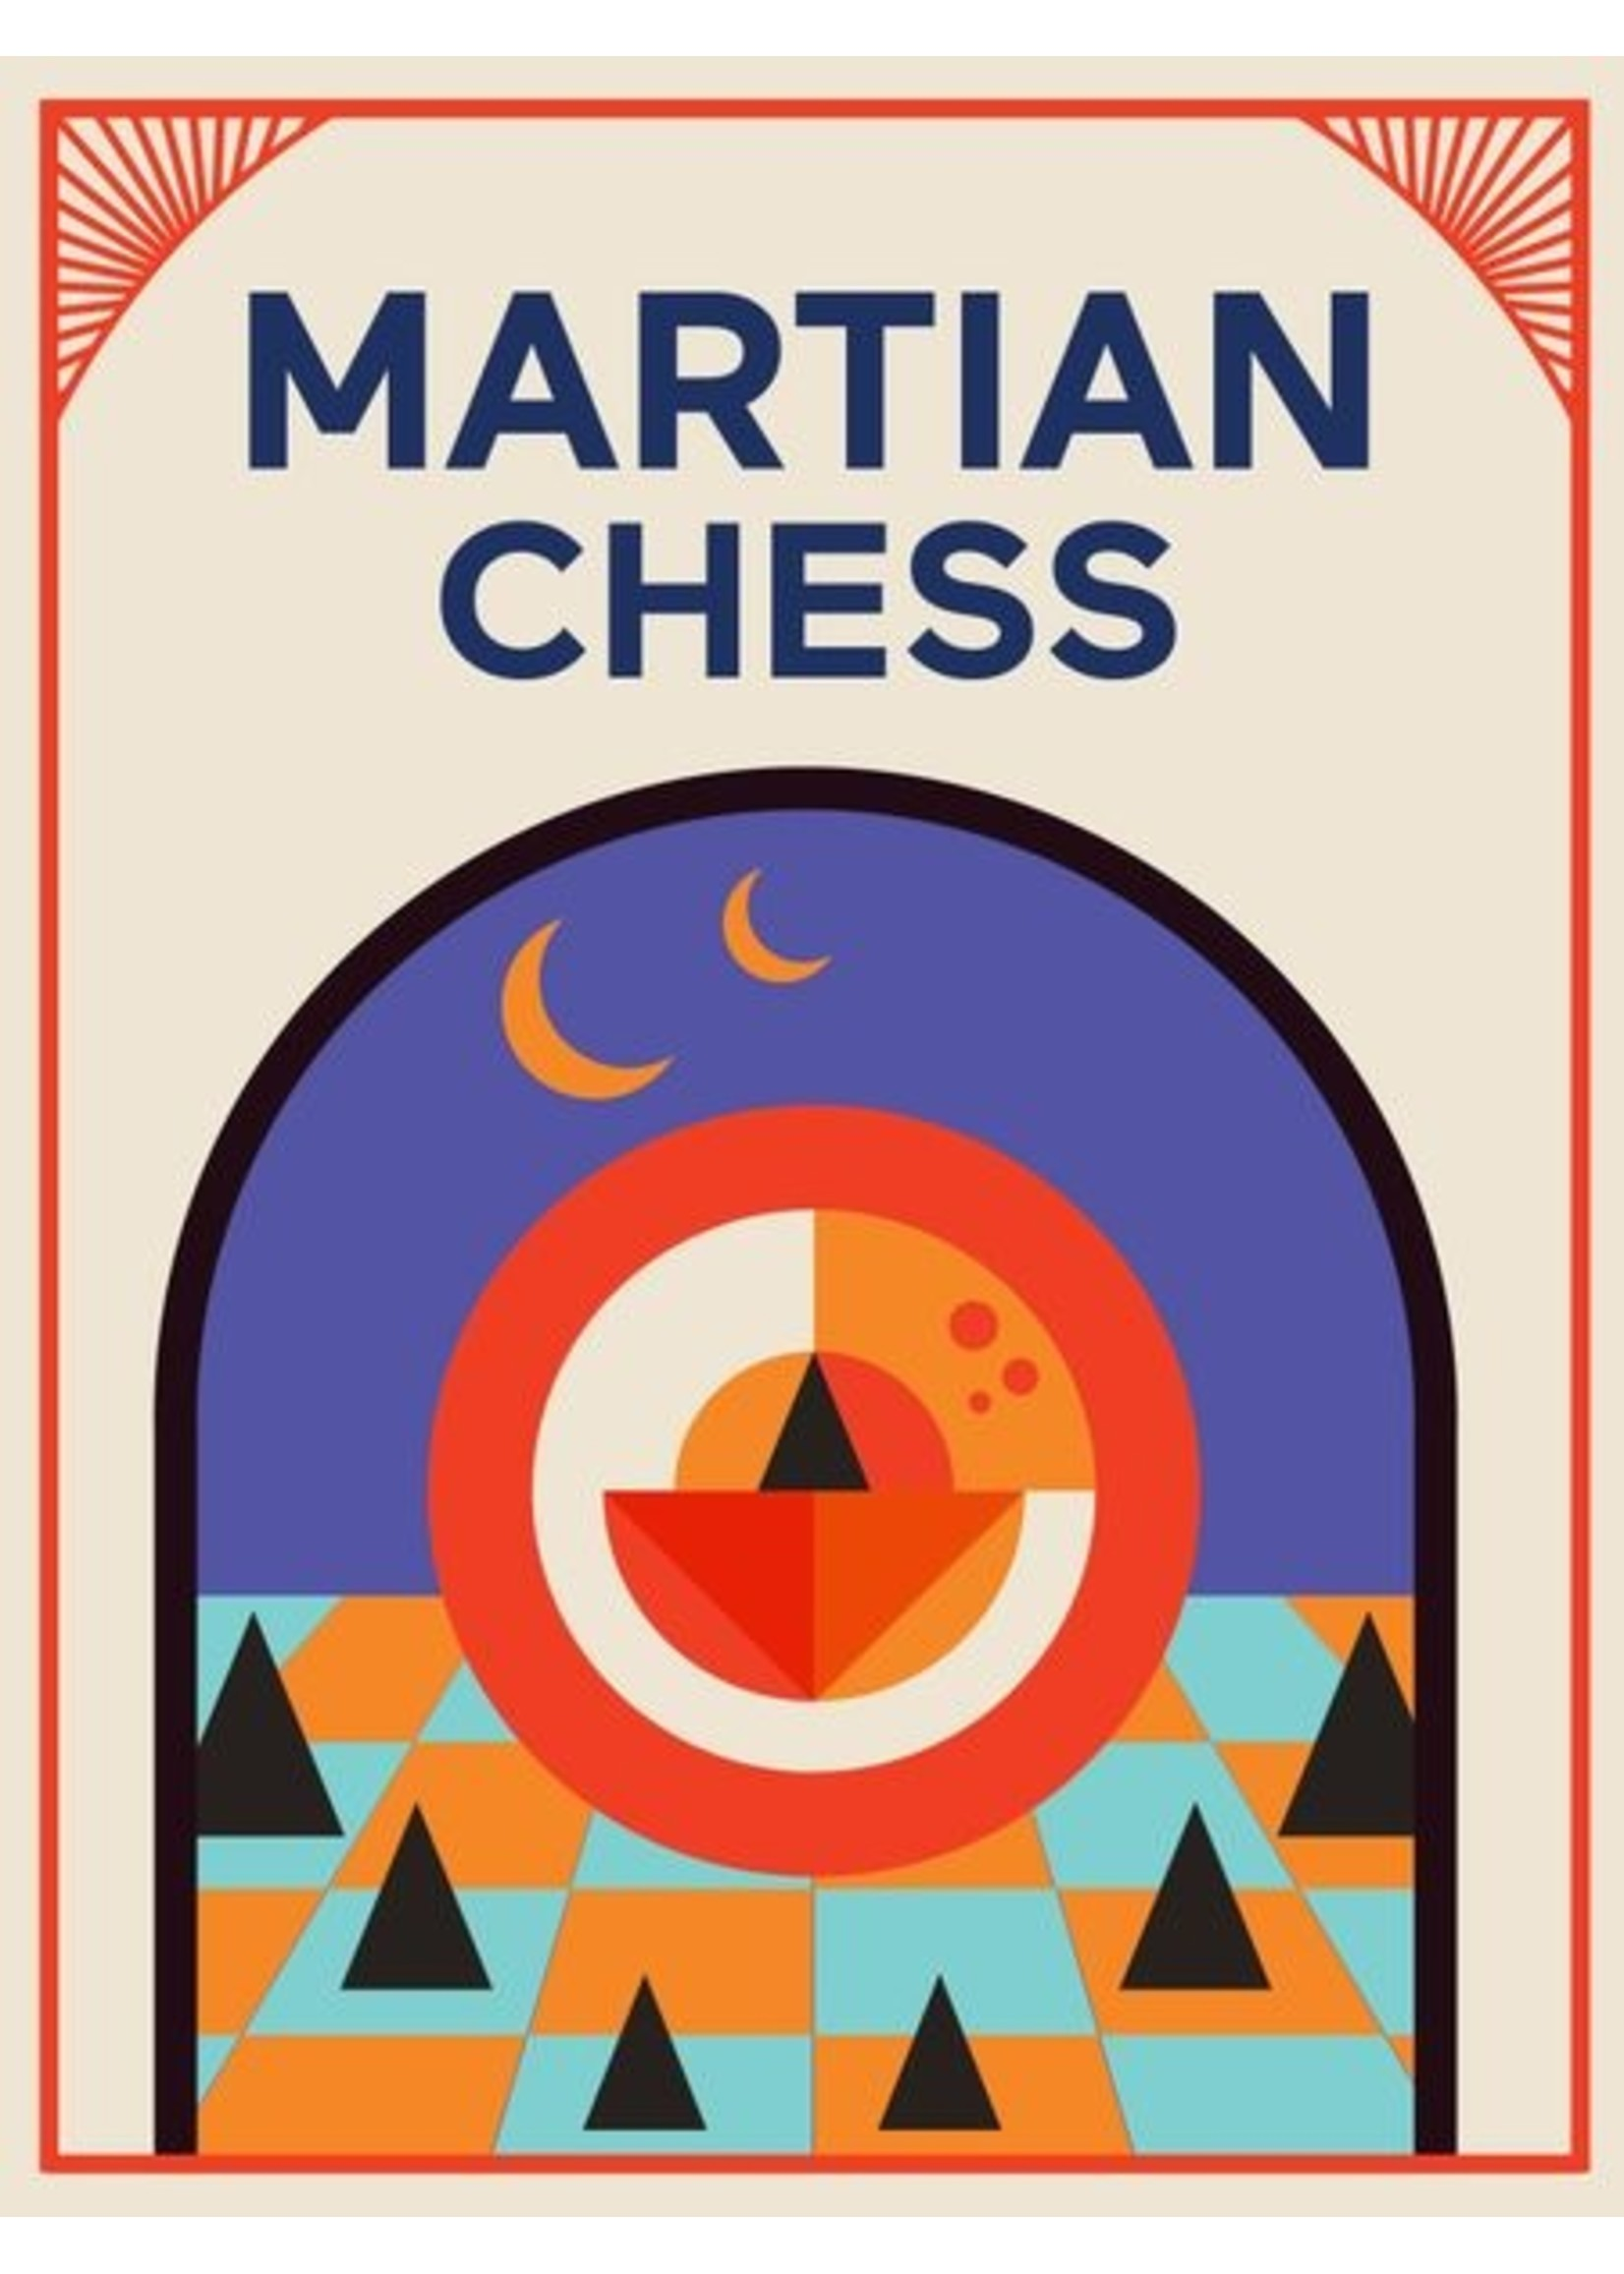 Martian Chess